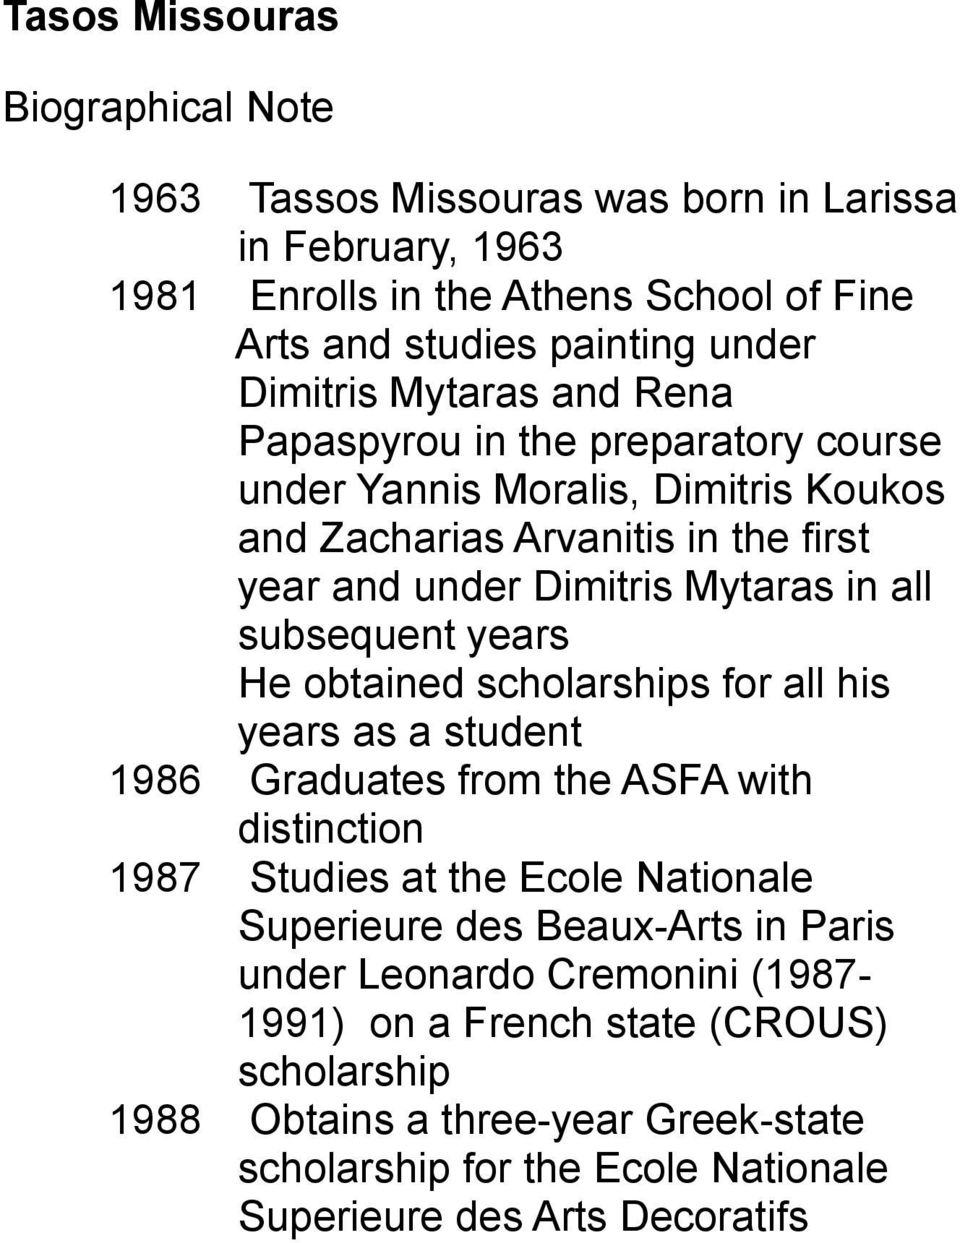 years He obtained scholarships for all his years as a student 1986 Graduates from the ASFA with distinction 1987 Studies at the Ecole Νationale Superieure des Beaux-Arts in Paris